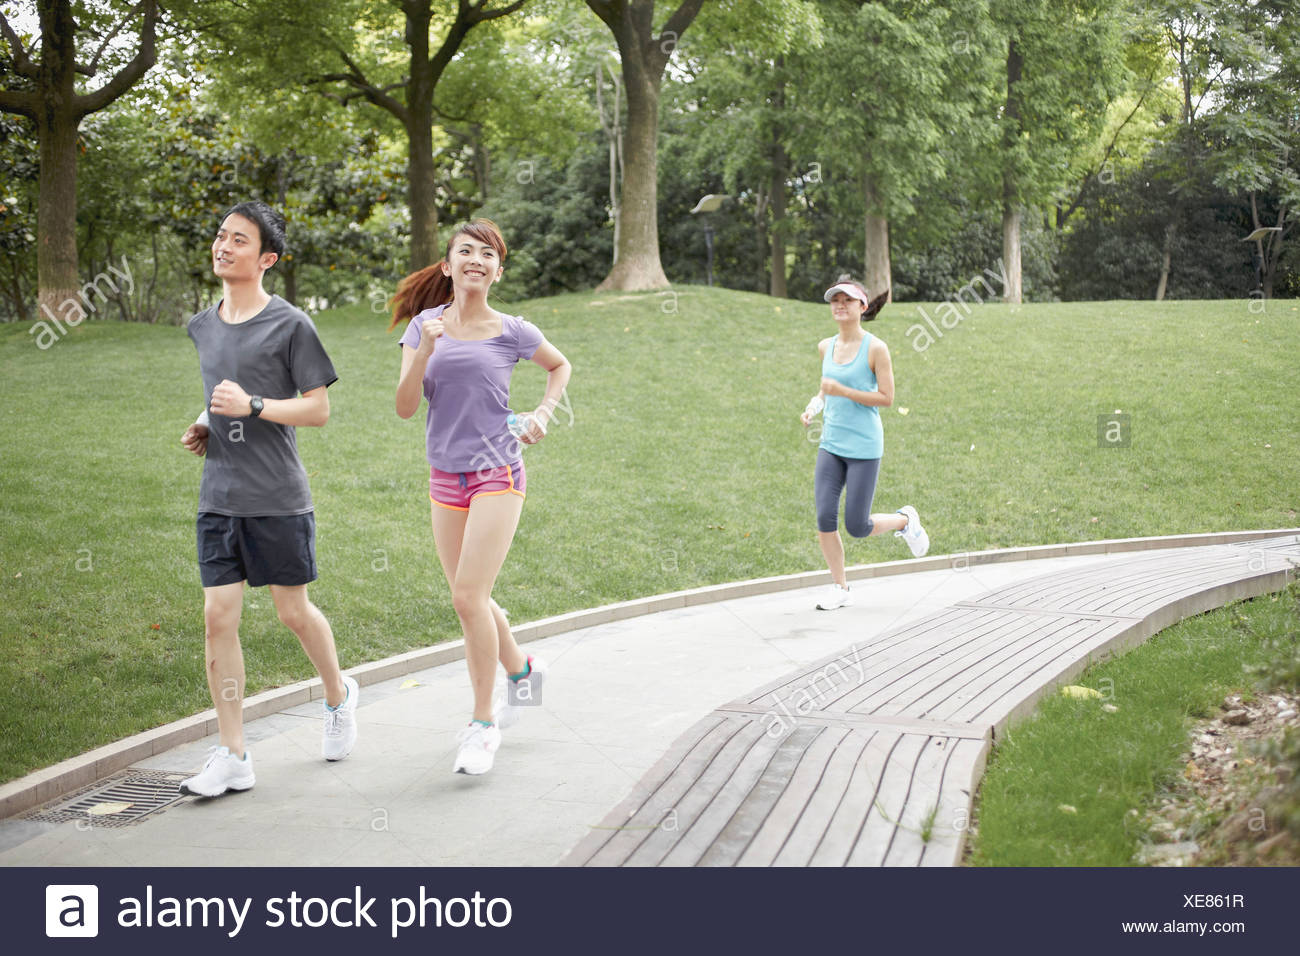 Three runners on path in park - Stock Image